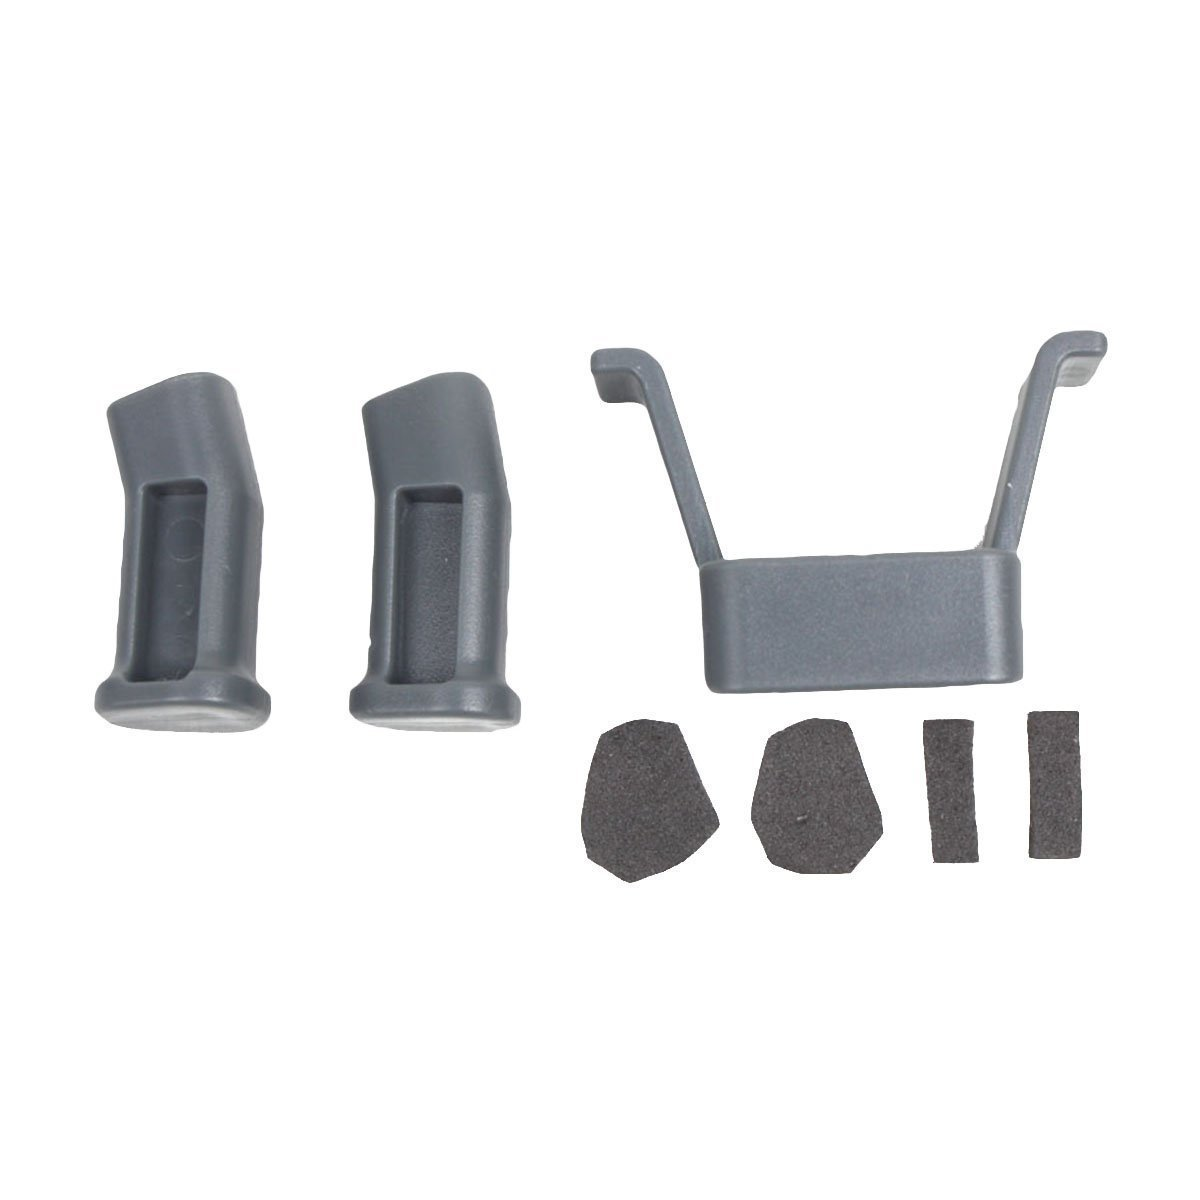 Ultimaxx MAVIC LANDING GEAR STABILIZER - GREY